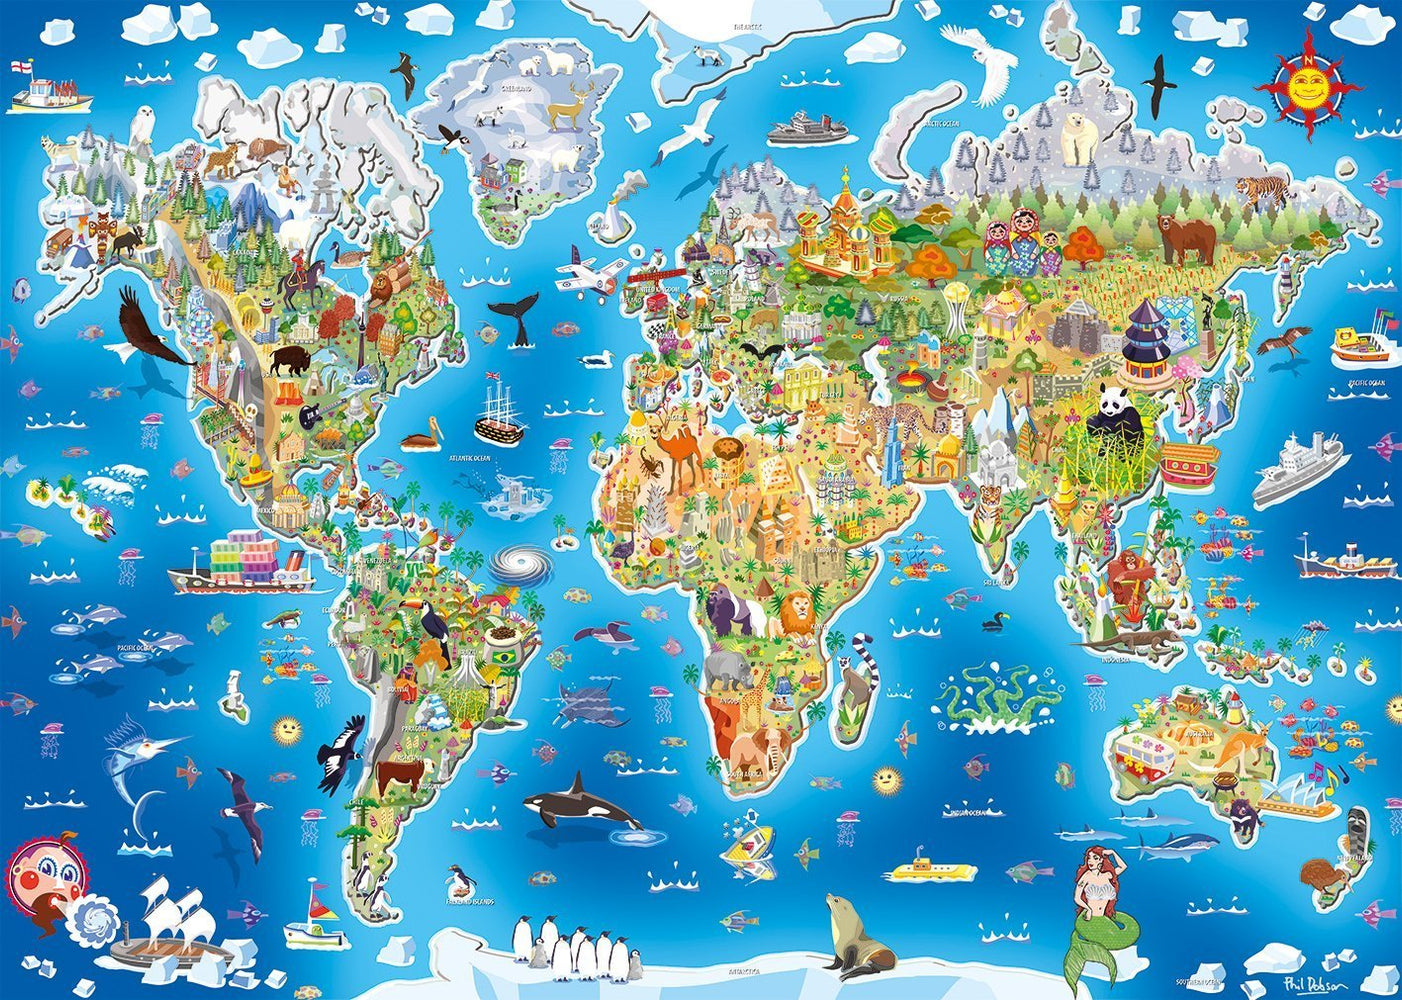 Jigmap - Our World 250 Piece Jigsaw Puzzle